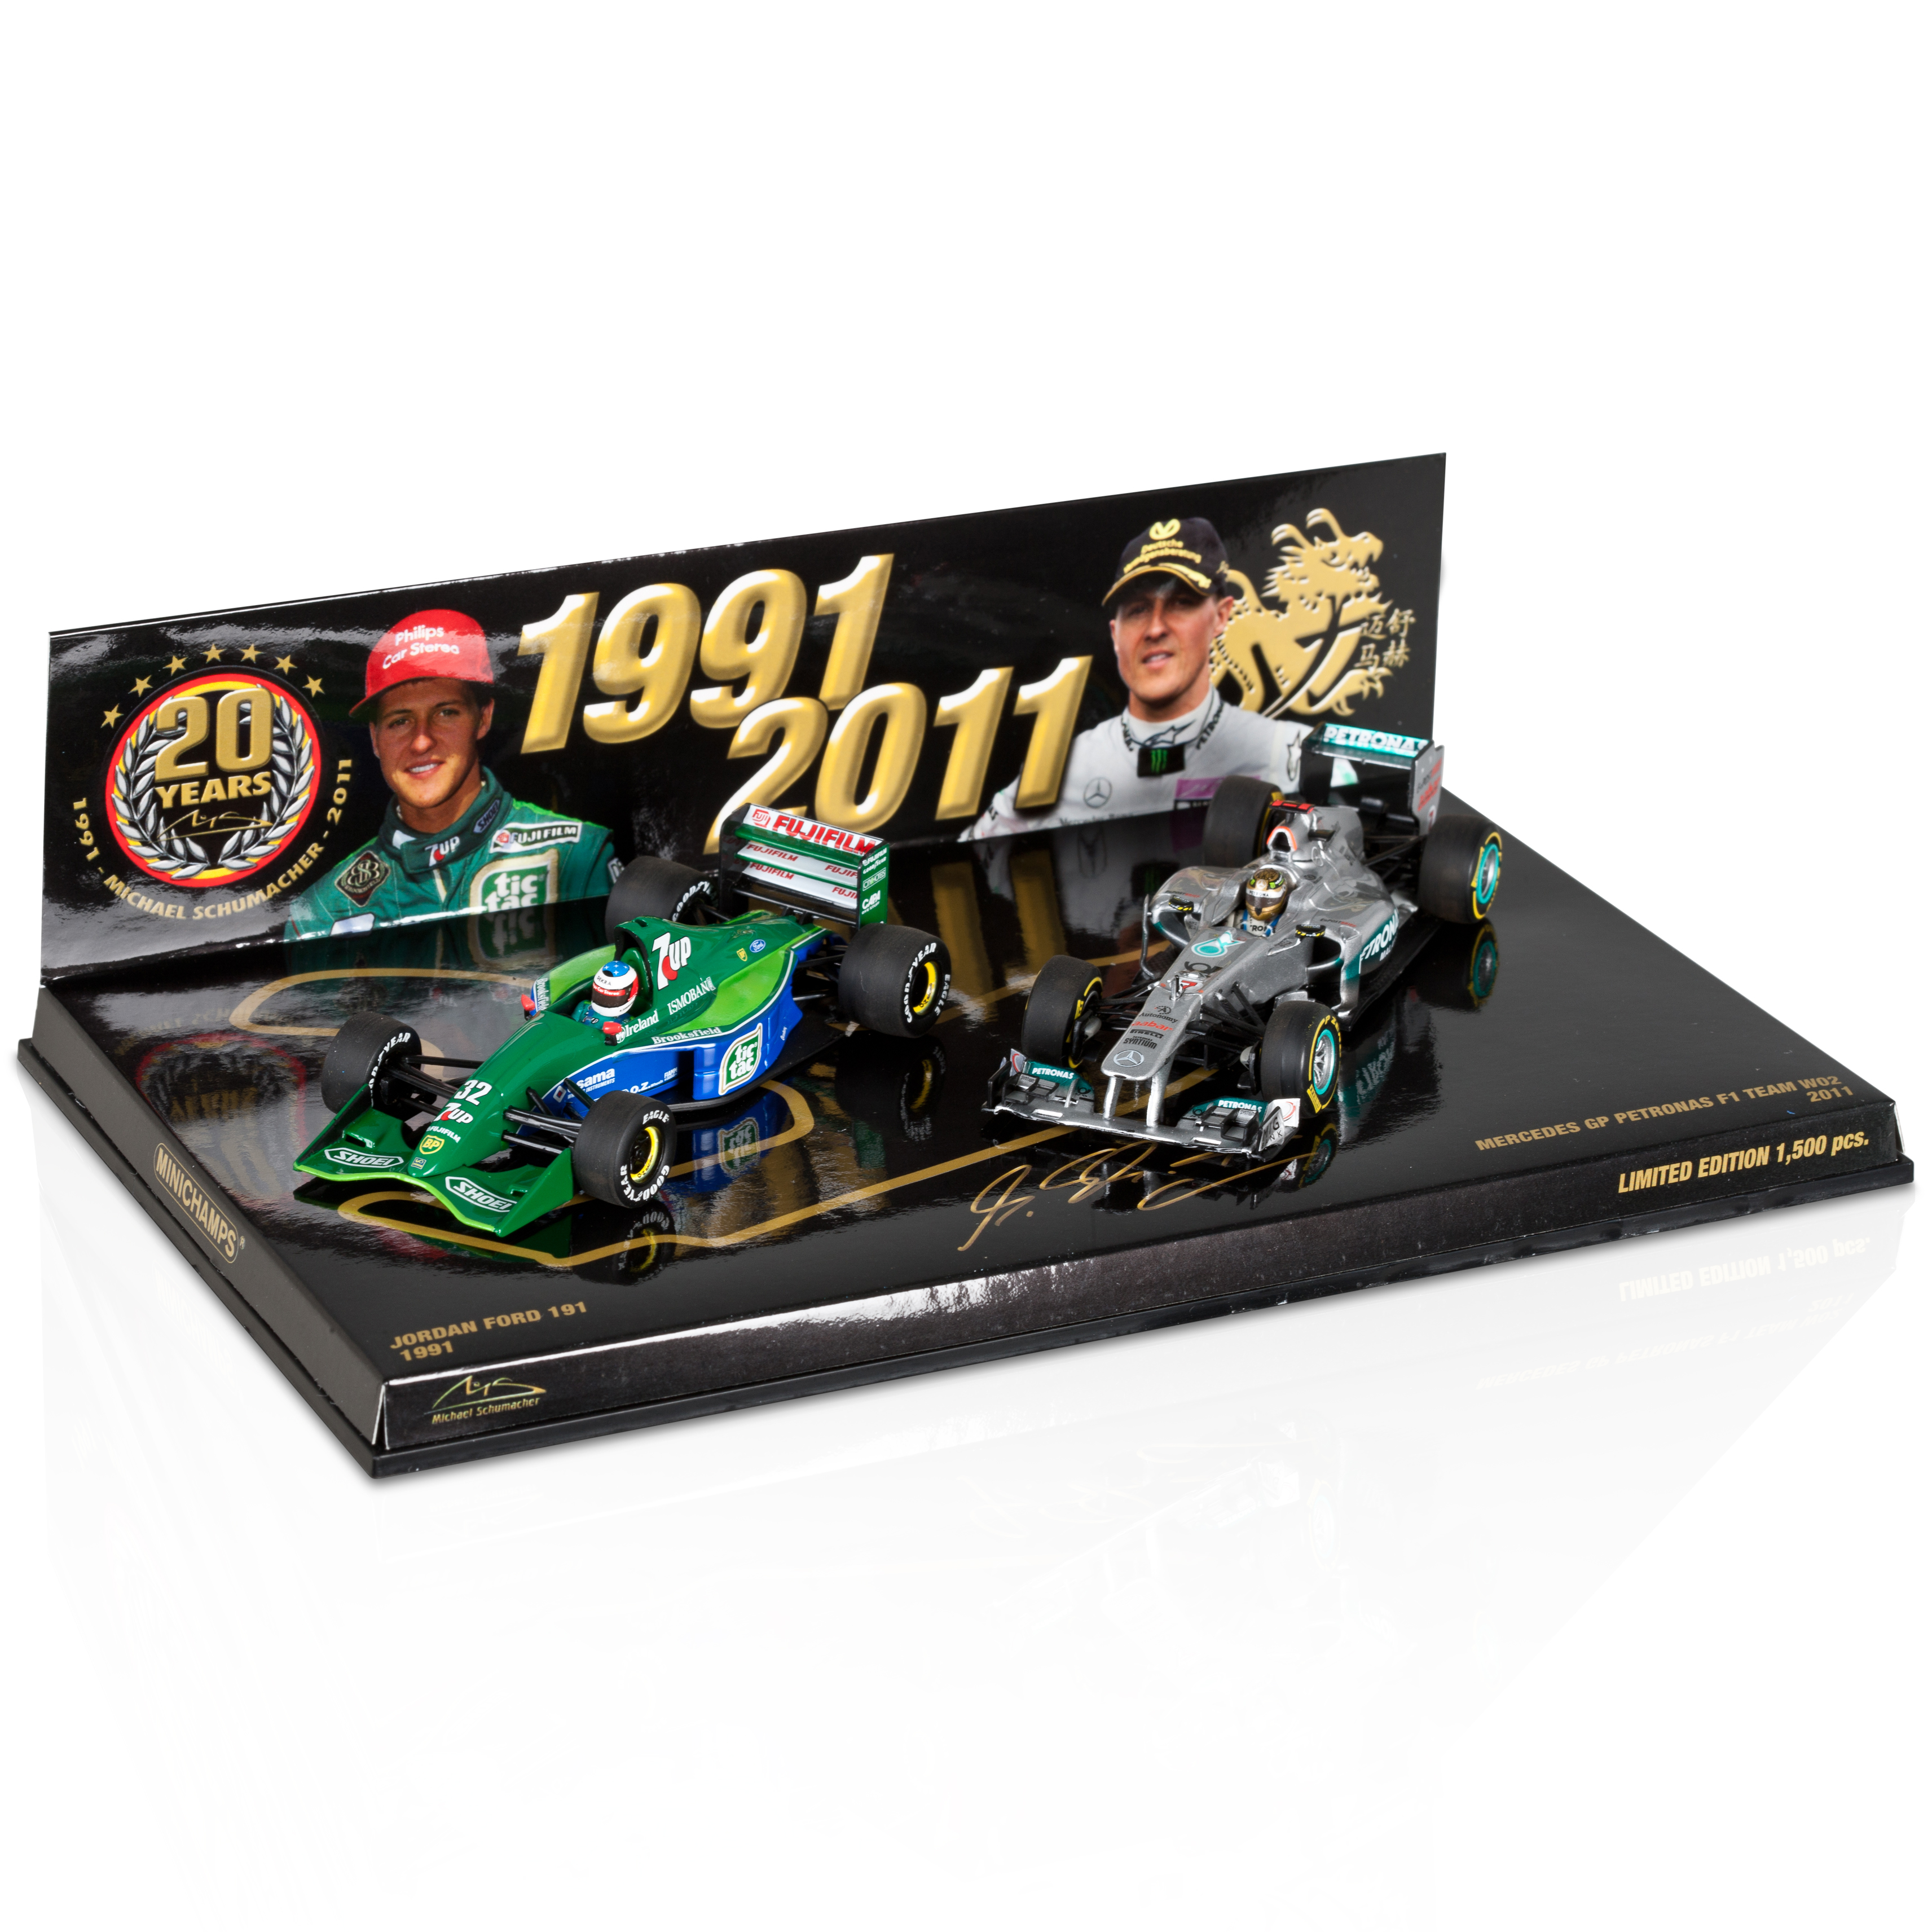 Michael Schumacher Spa 1991 - 2011 Double Set Model 1:43 Scale